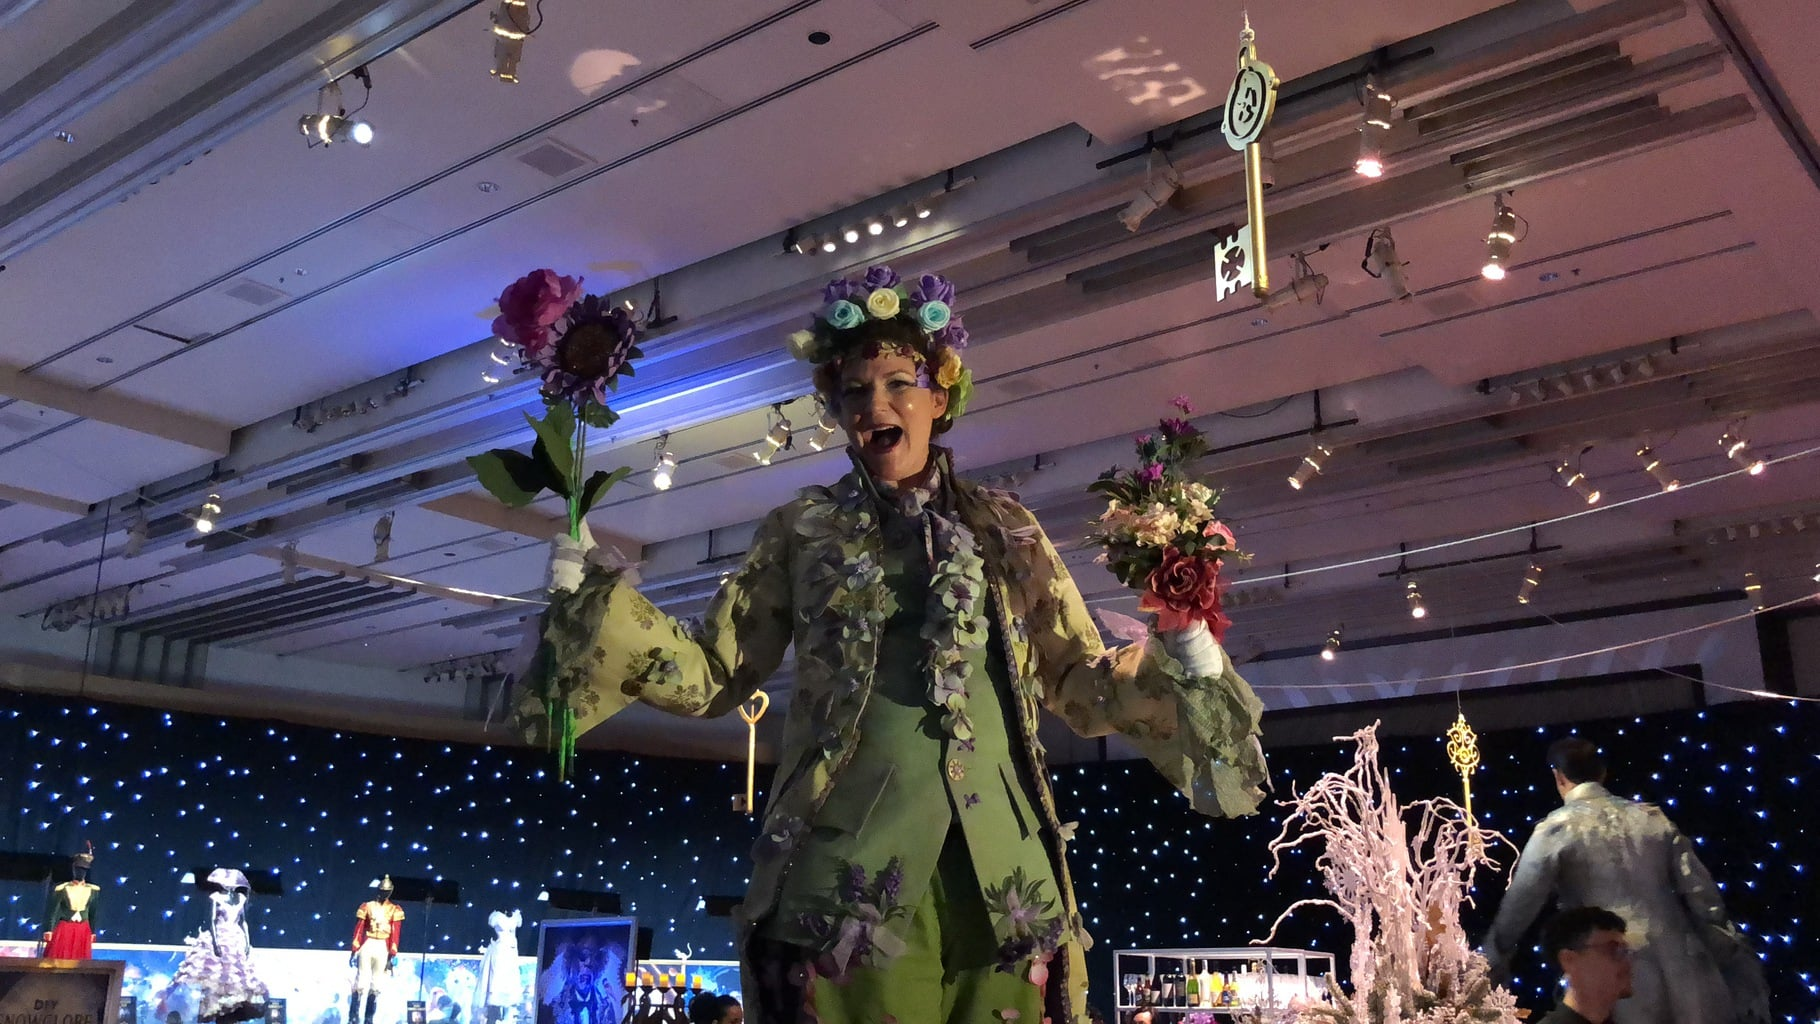 Walking the Red Carpet for Disney's Nutcracker and the Four Realms - stilts